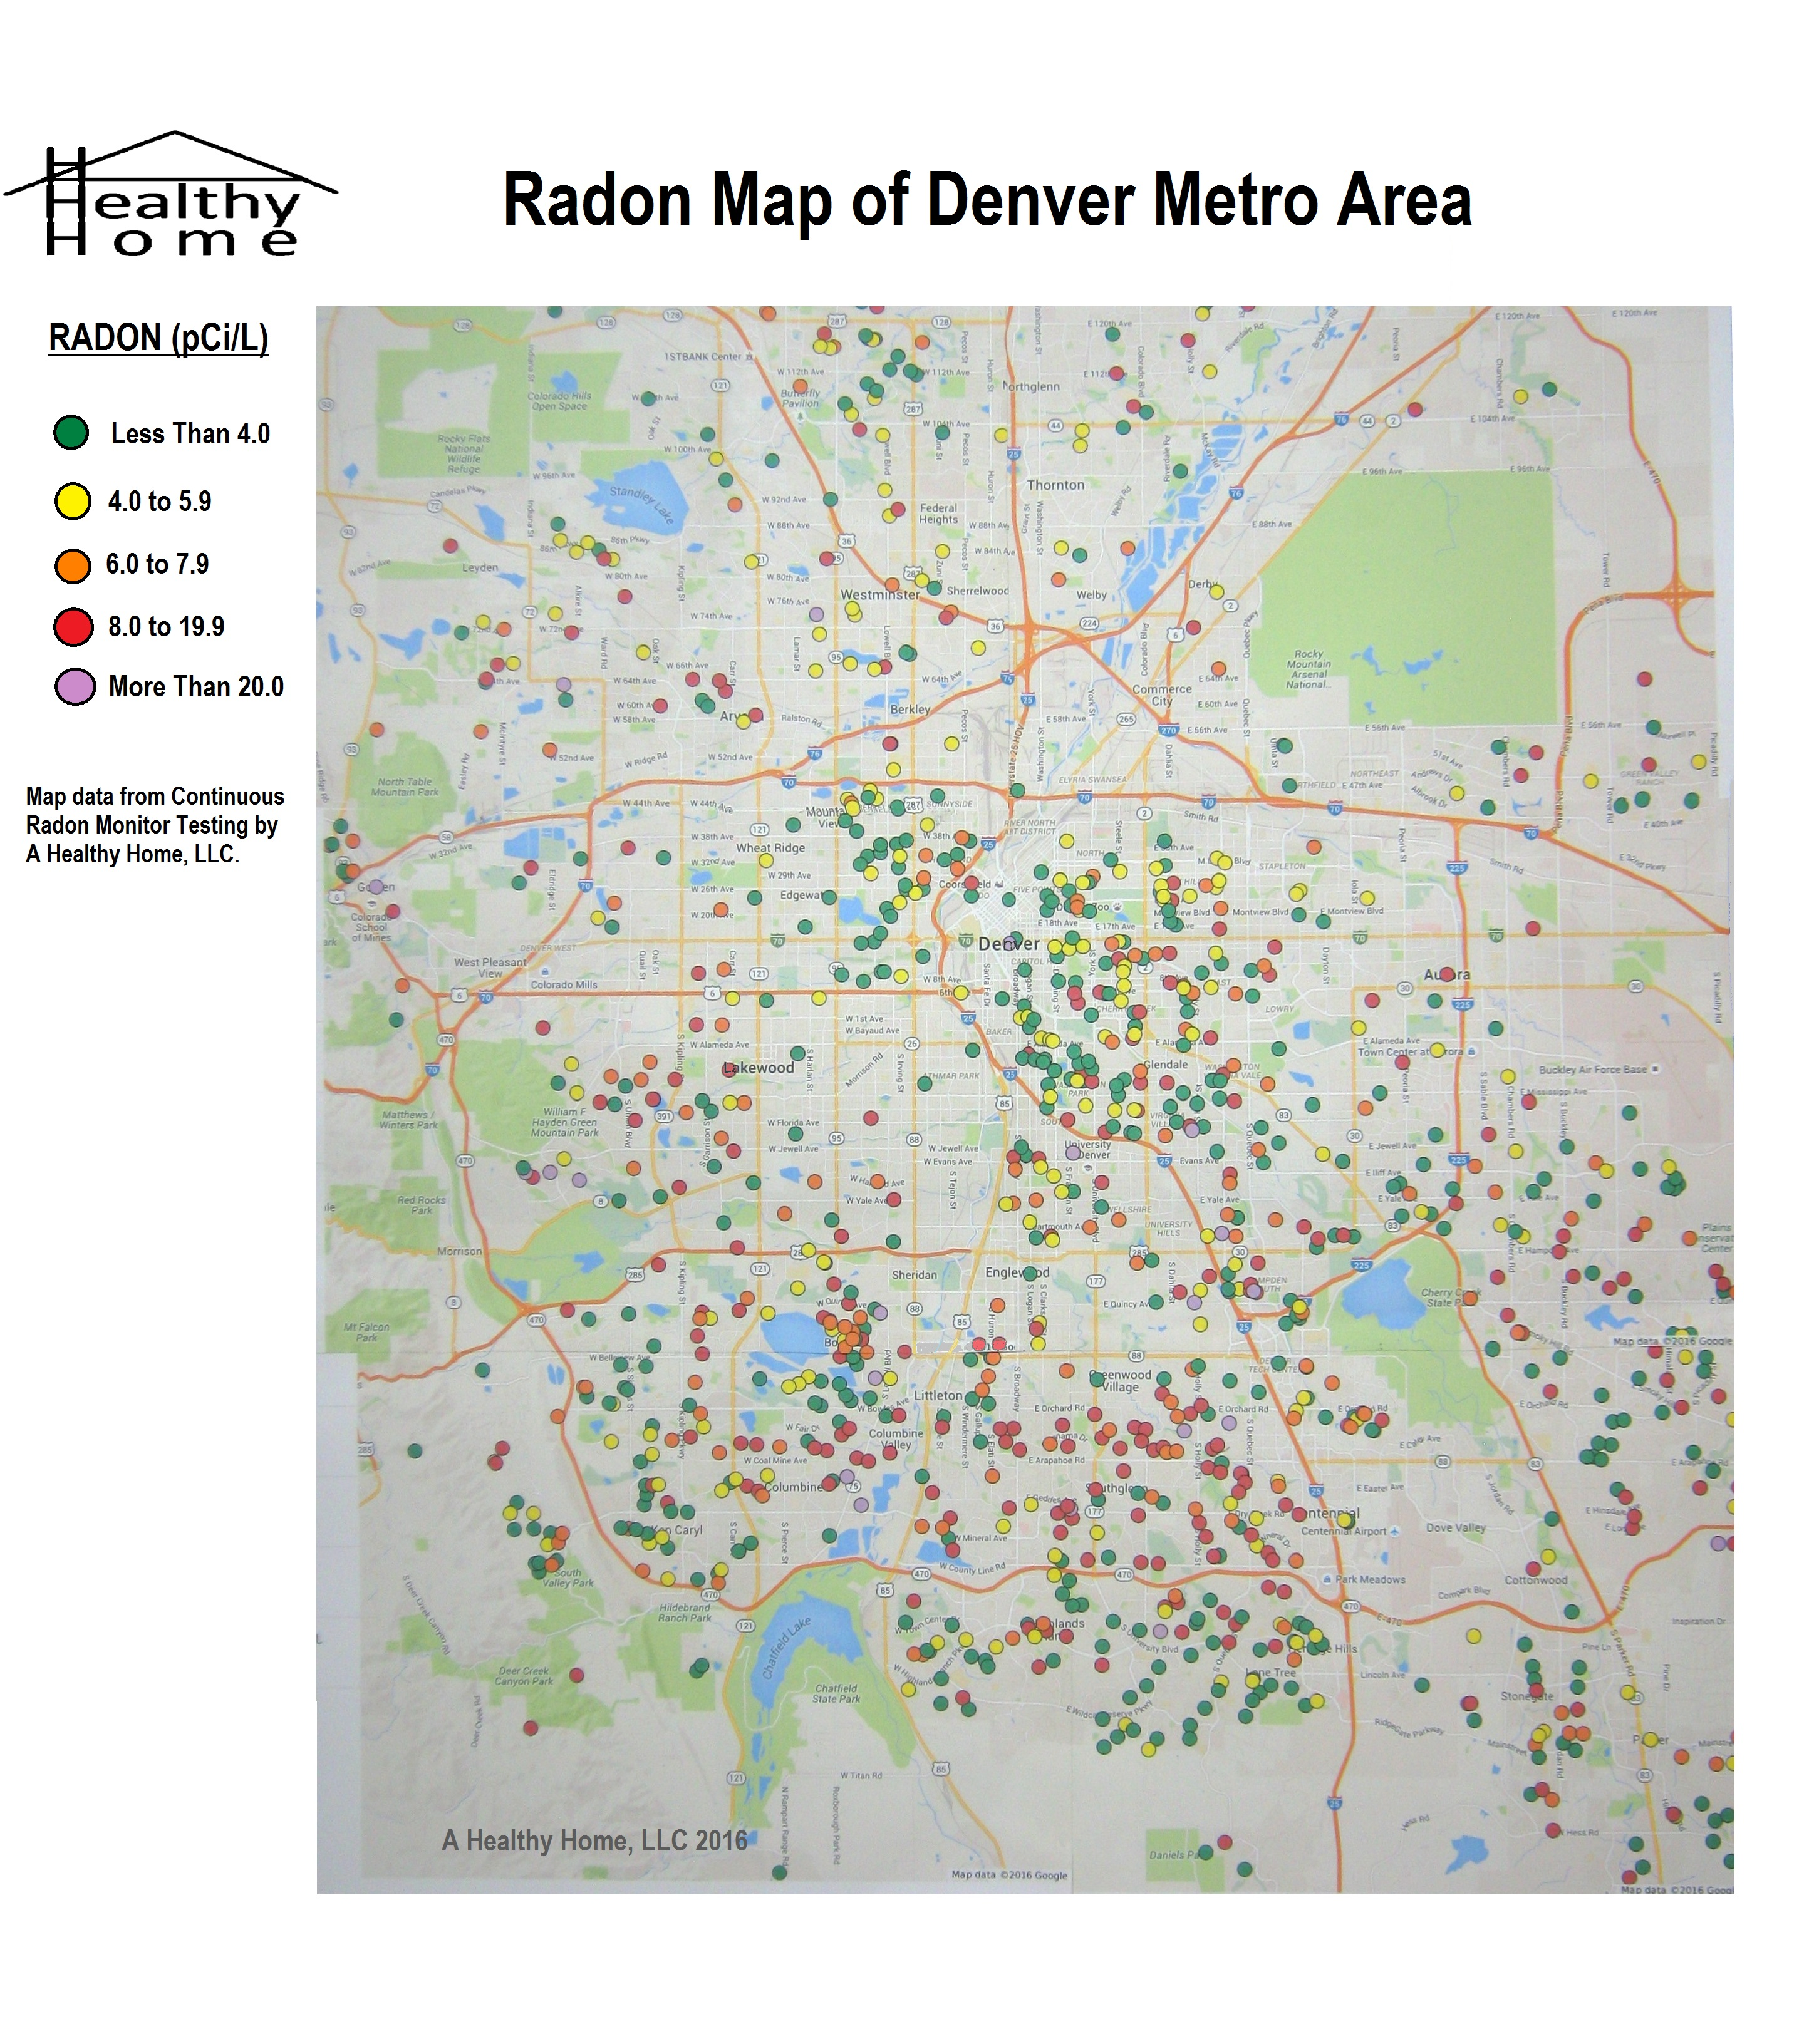 Radon Map of Denver Area - A Healthy Home, LLC on